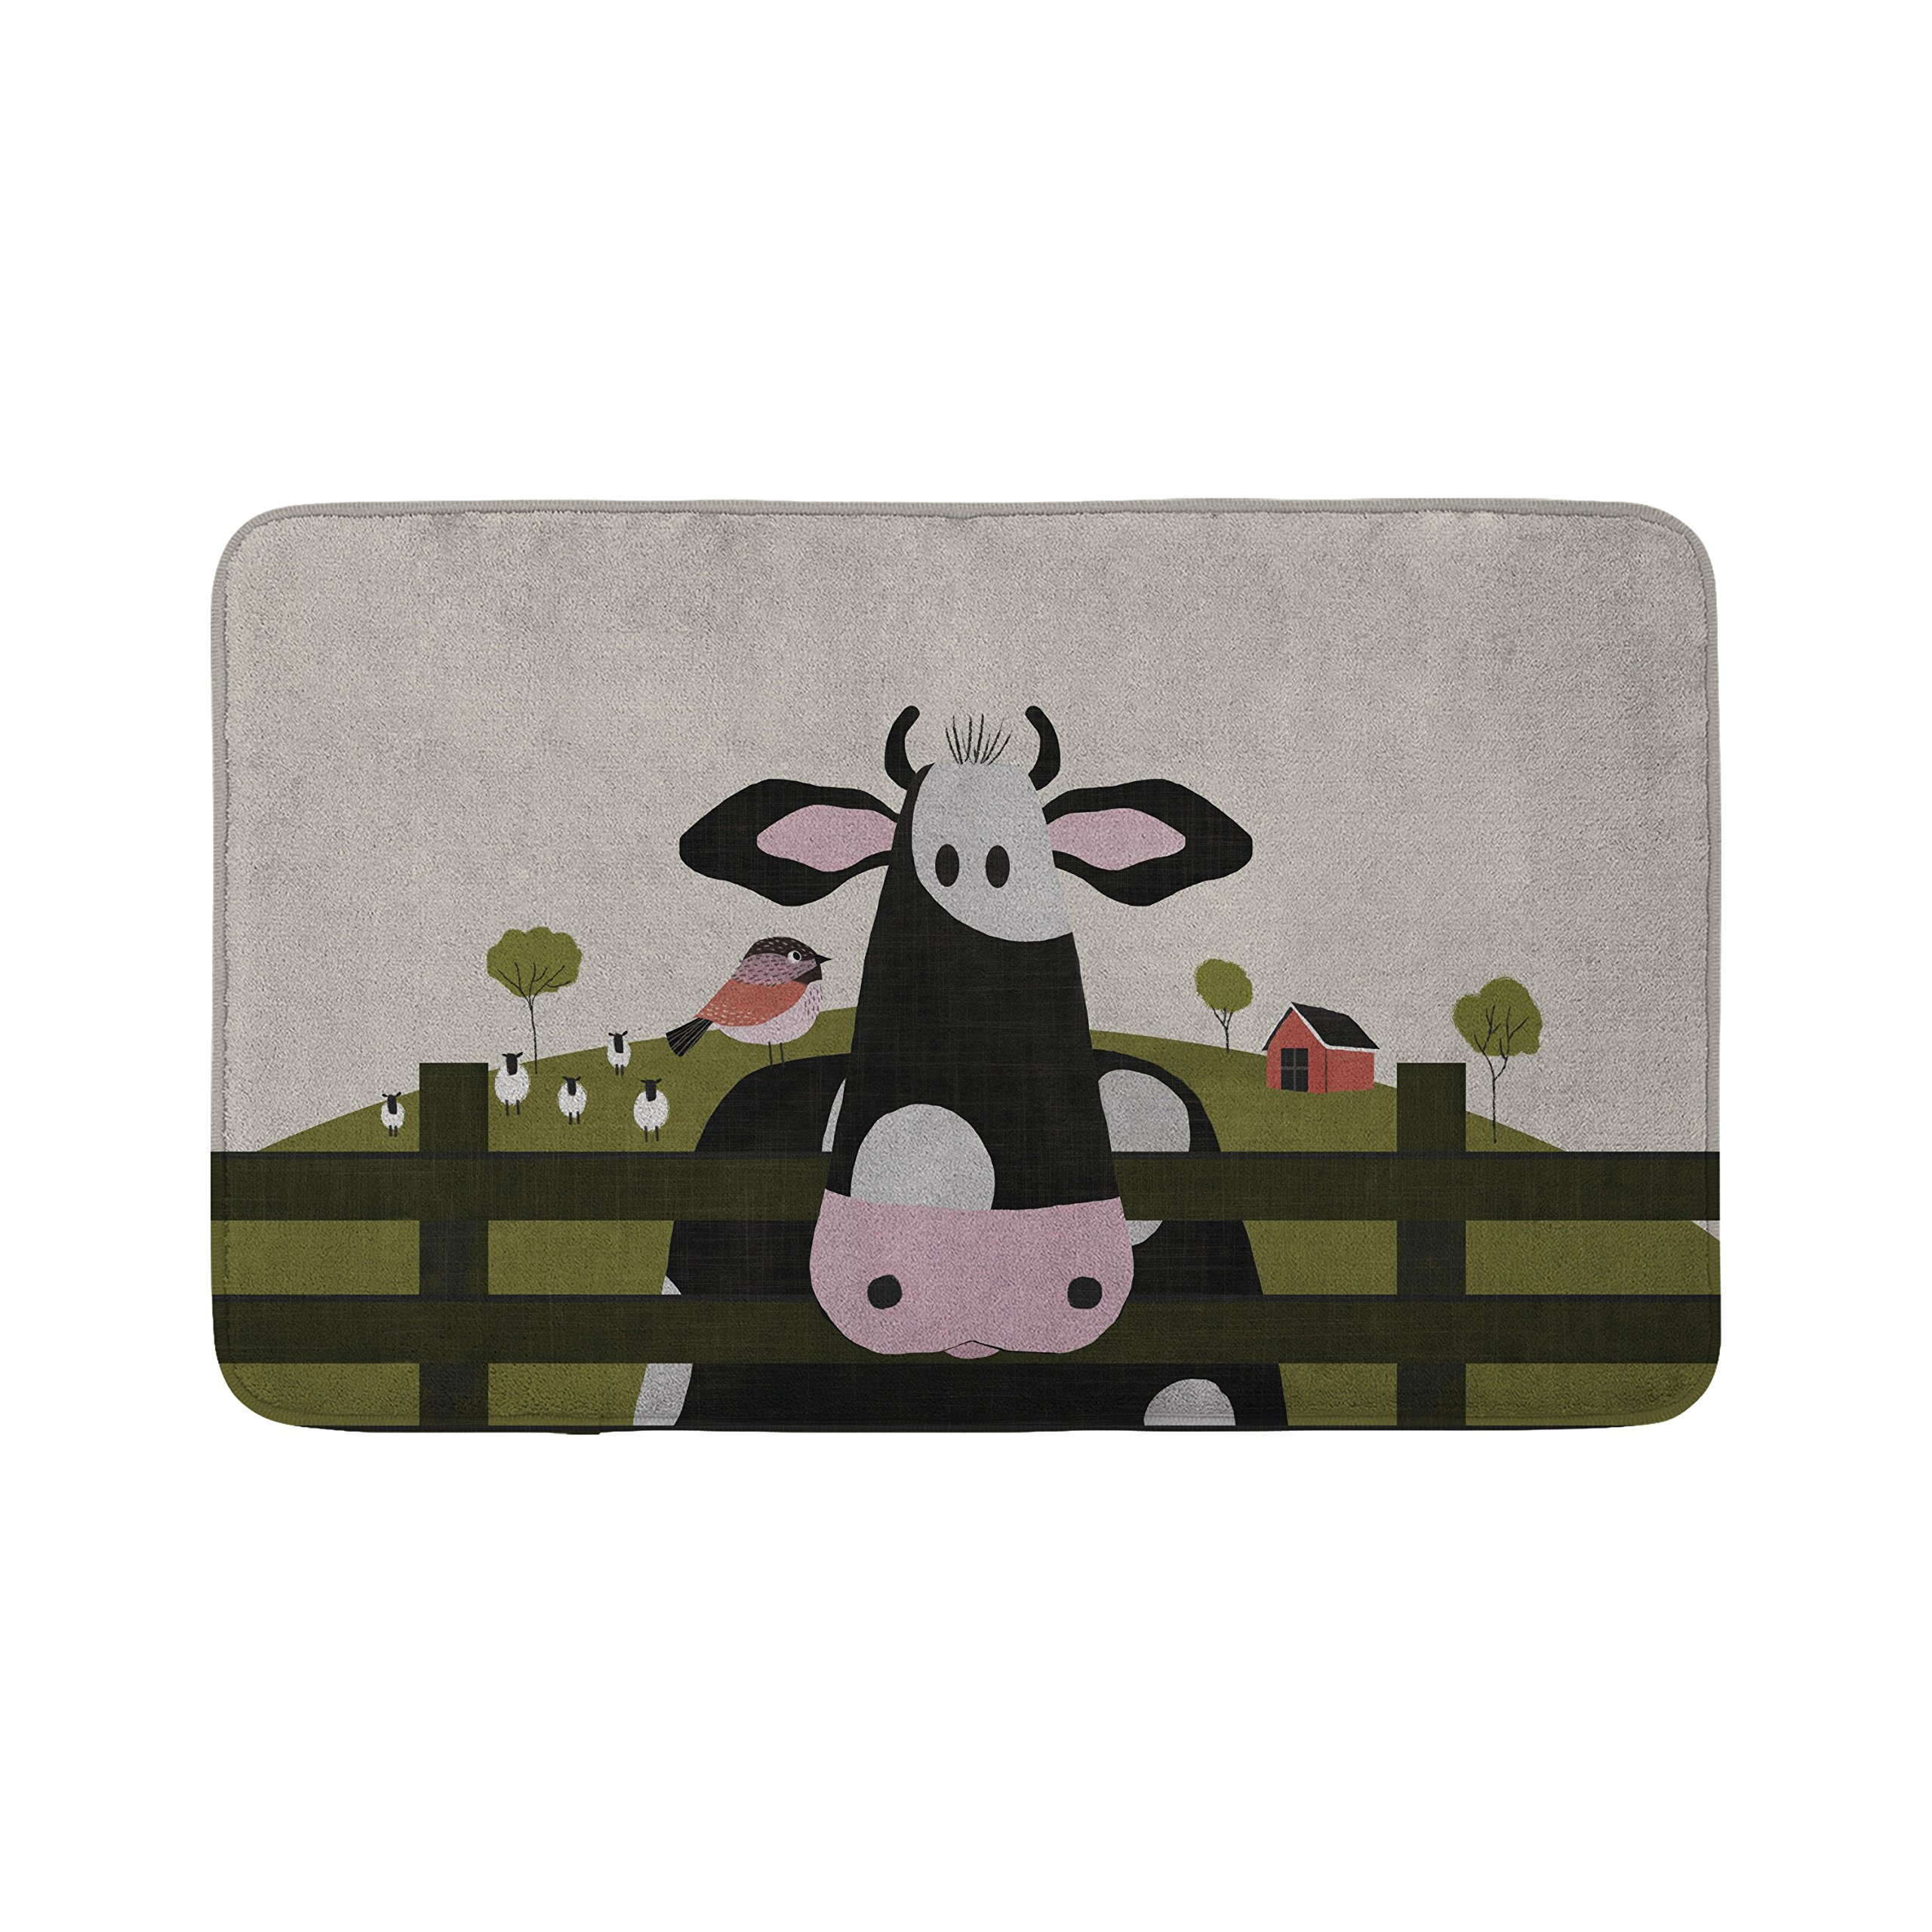 Mouse + Magpie Caley the Cow Farm Animal Bath Mat, Skid-Proof, Memory Foam, Soft, Quick-Dry Microfiber, 31''x19'' for Toddler, Kid, Child Bathroom